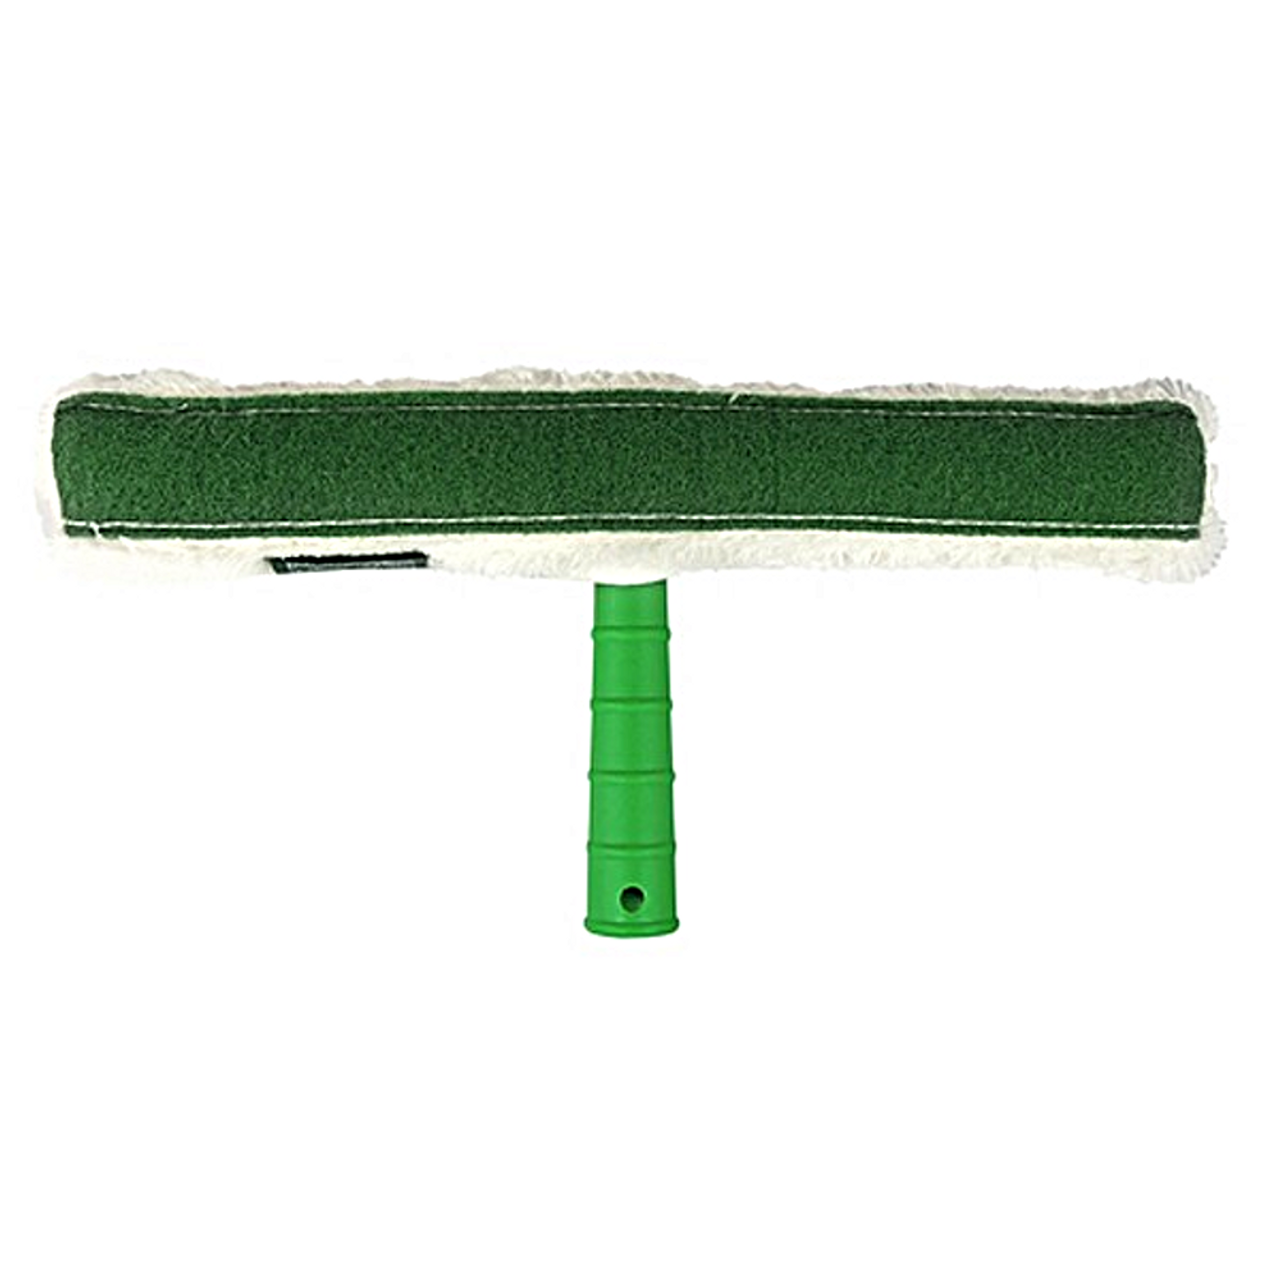 The green scrub pad is great for removing stuck on gunk.